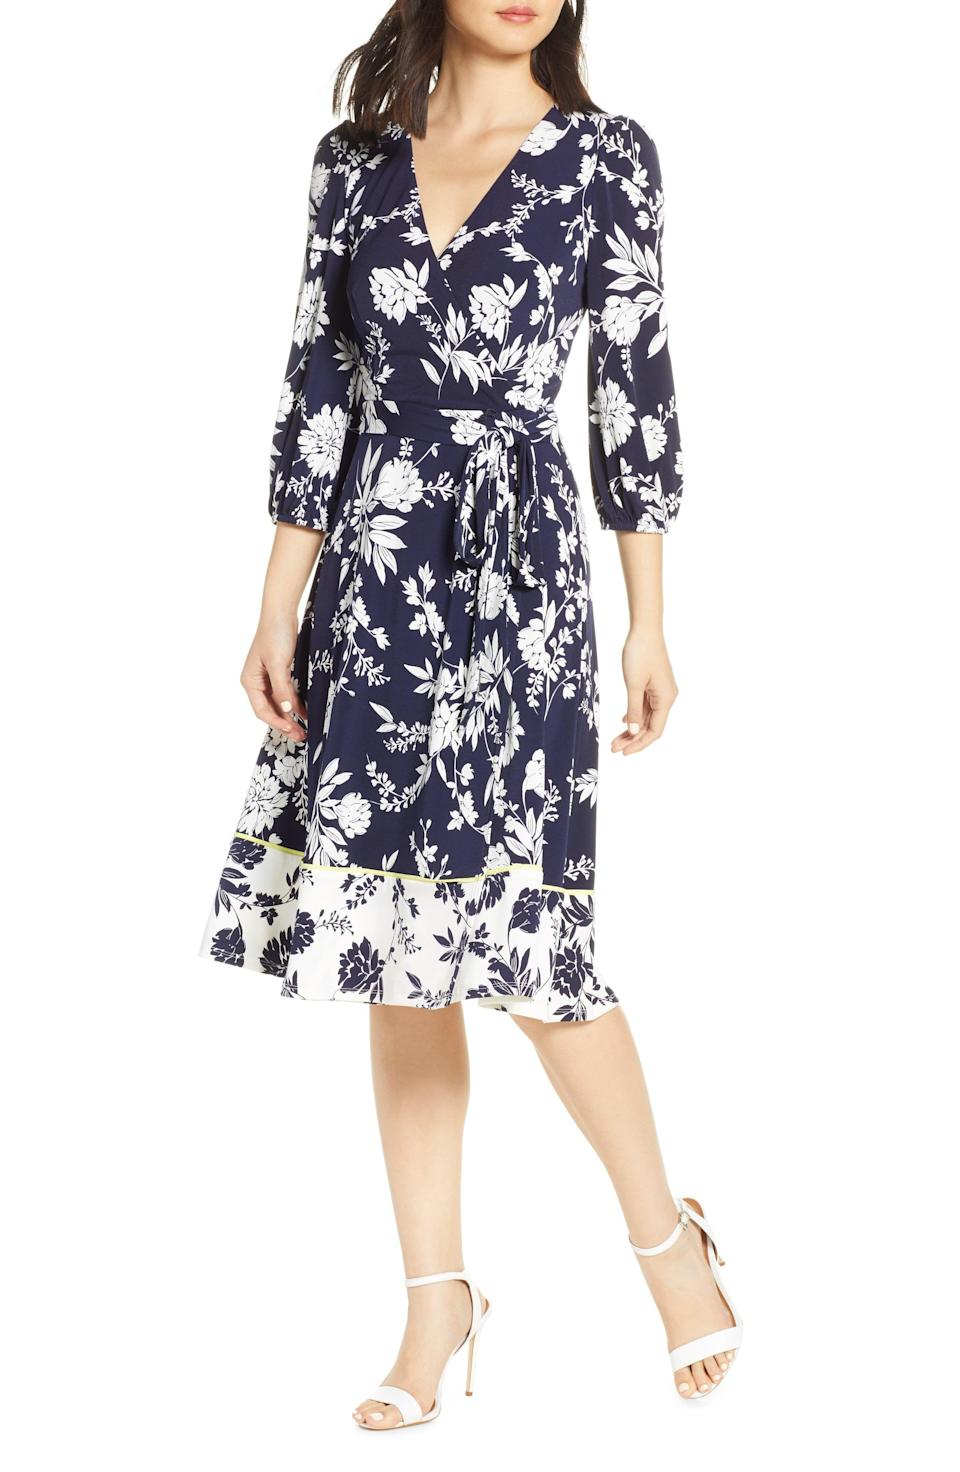 """<p><strong>ELIZA J</strong></p><p>nordstrom.com</p><p><strong>$88.80</strong></p><p><a href=""""https://go.redirectingat.com?id=74968X1596630&url=https%3A%2F%2Fshop.nordstrom.com%2Fs%2Feliza-j-floral-print-faux-wrap-dress-regular-petite%2F5179898&sref=https%3A%2F%2Fwww.townandcountrymag.com%2Fstyle%2Ffashion-trends%2Fg12096491%2Fbest-fall-wedding-guest-dresses%2F"""" rel=""""nofollow noopener"""" target=""""_blank"""" data-ylk=""""slk:Shop Now"""" class=""""link rapid-noclick-resp"""">Shop Now</a></p><p>If you're not ready to give up your floral print summer favorites, this wrap-style dress takes them into a new season with a fall-appropriate palate. </p>"""